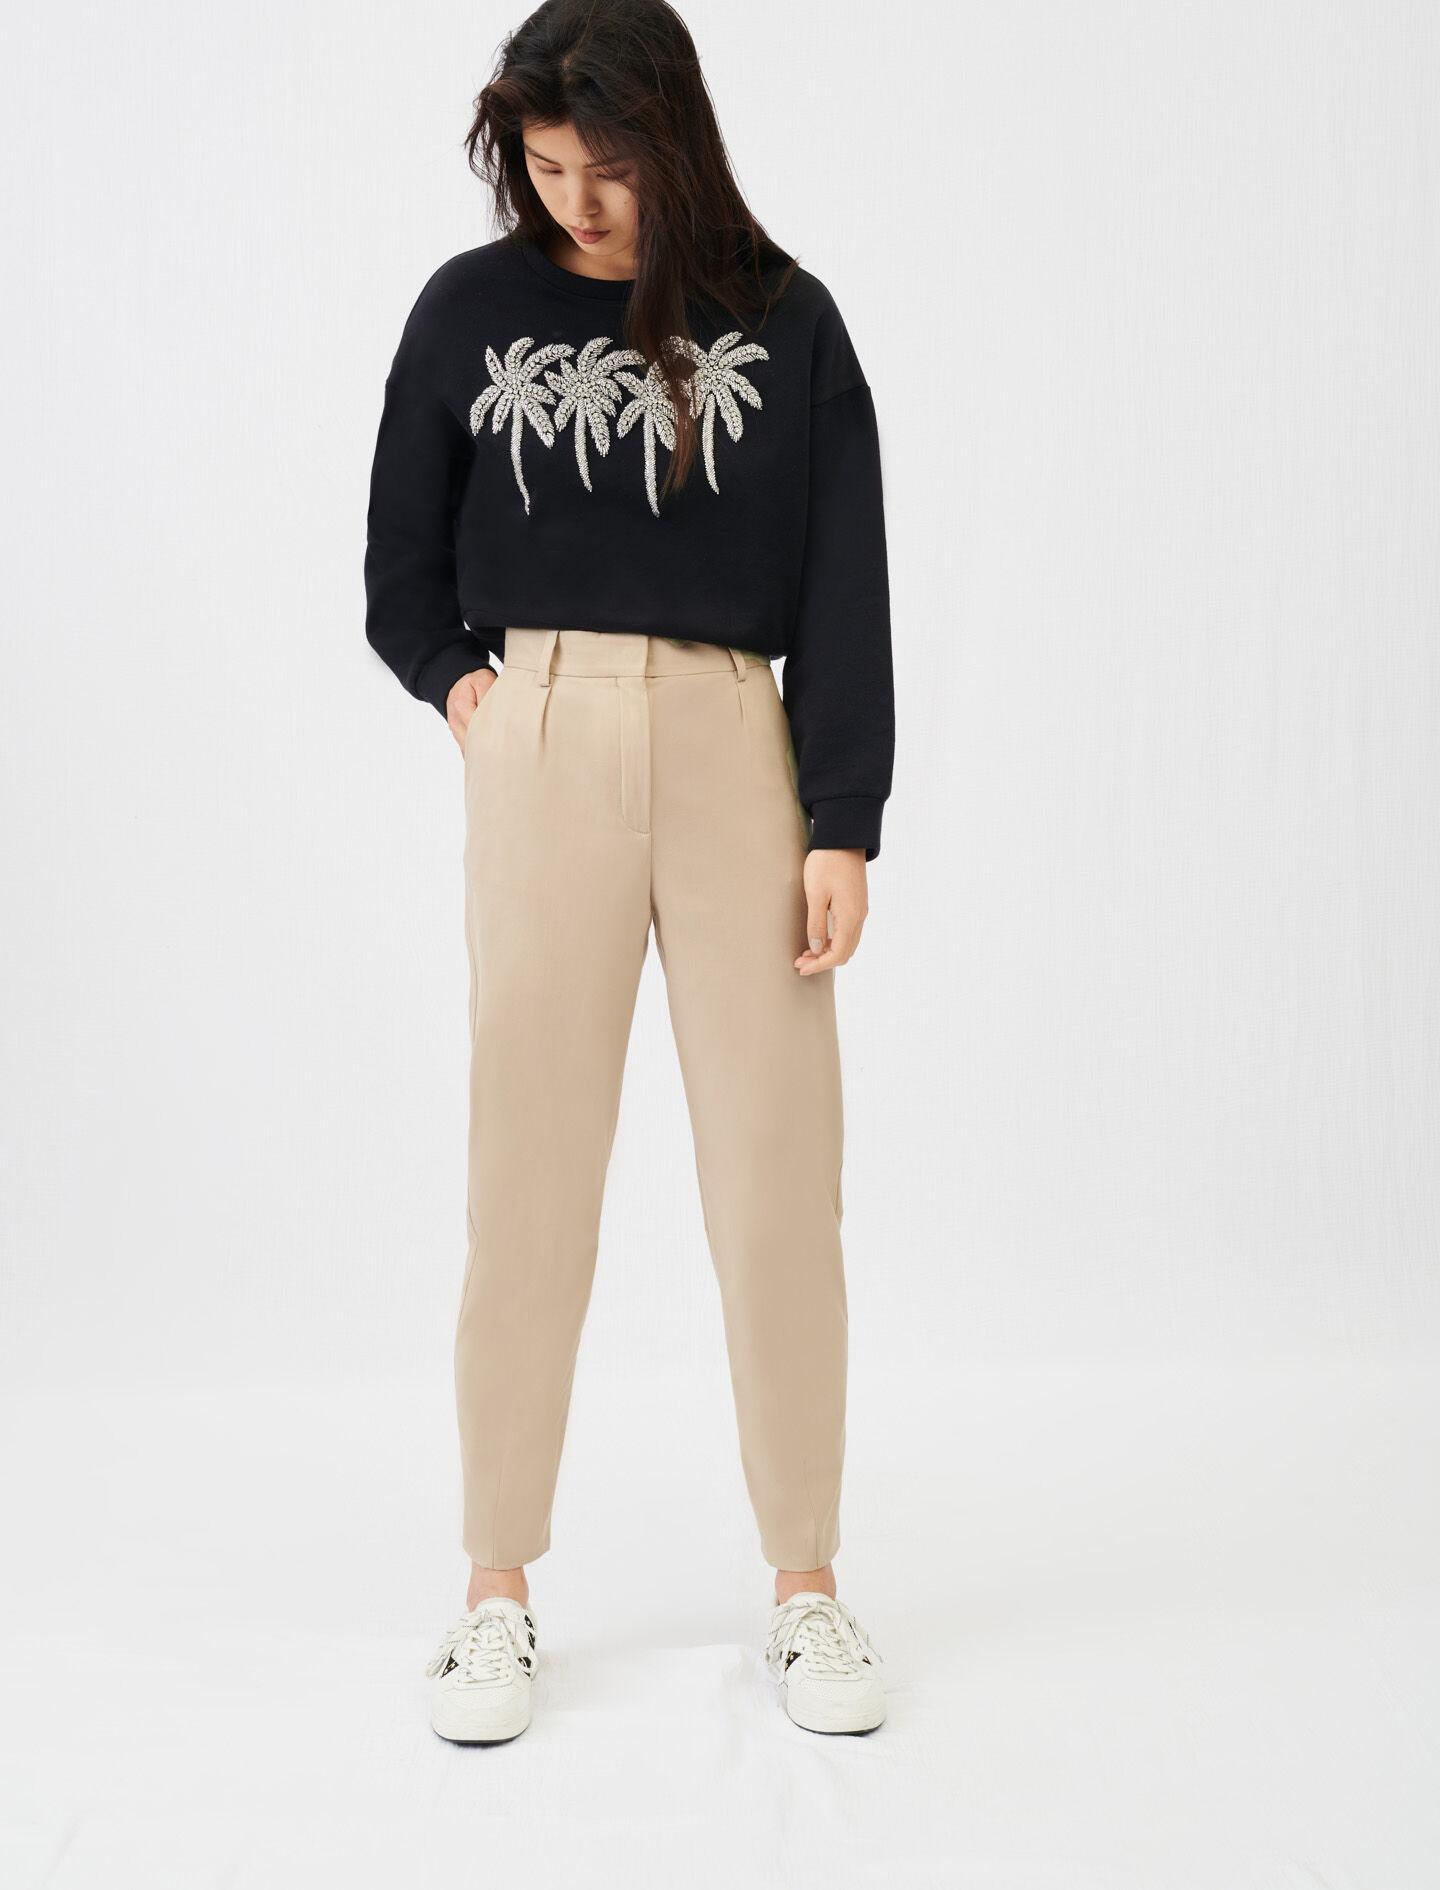 HIGH-WAISTED SUIT PANTS